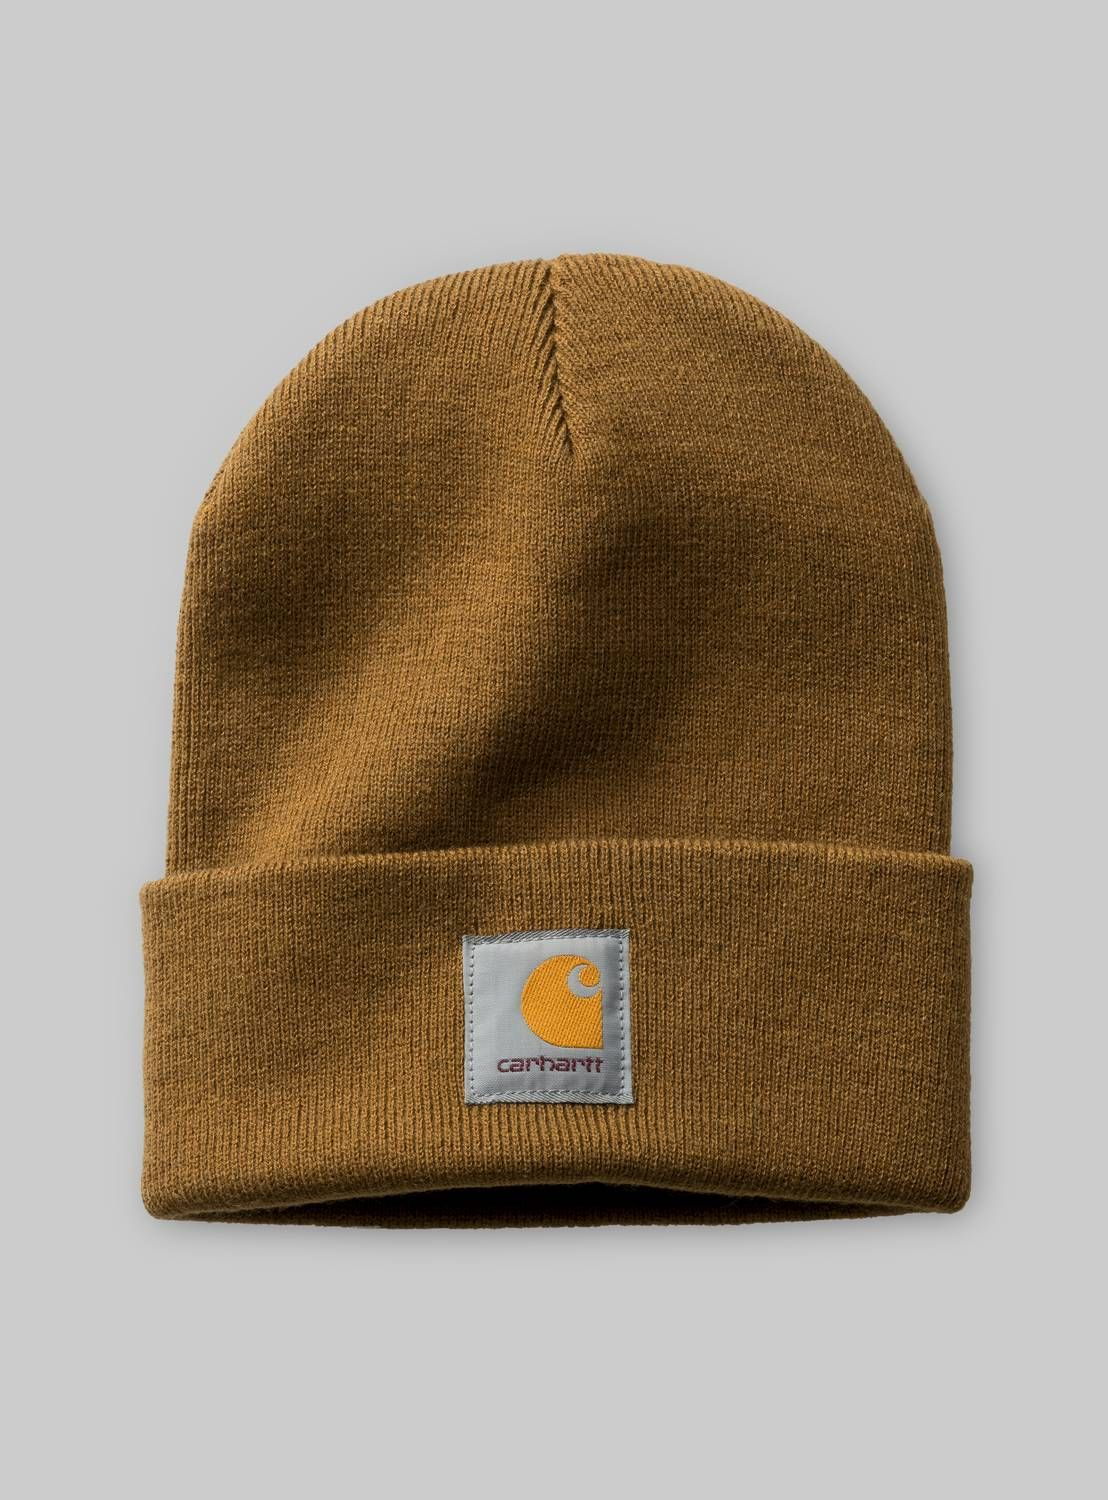 Shop the Carhartt WIP Short Watch Hat from the offical online store ... 361c2d1bd18